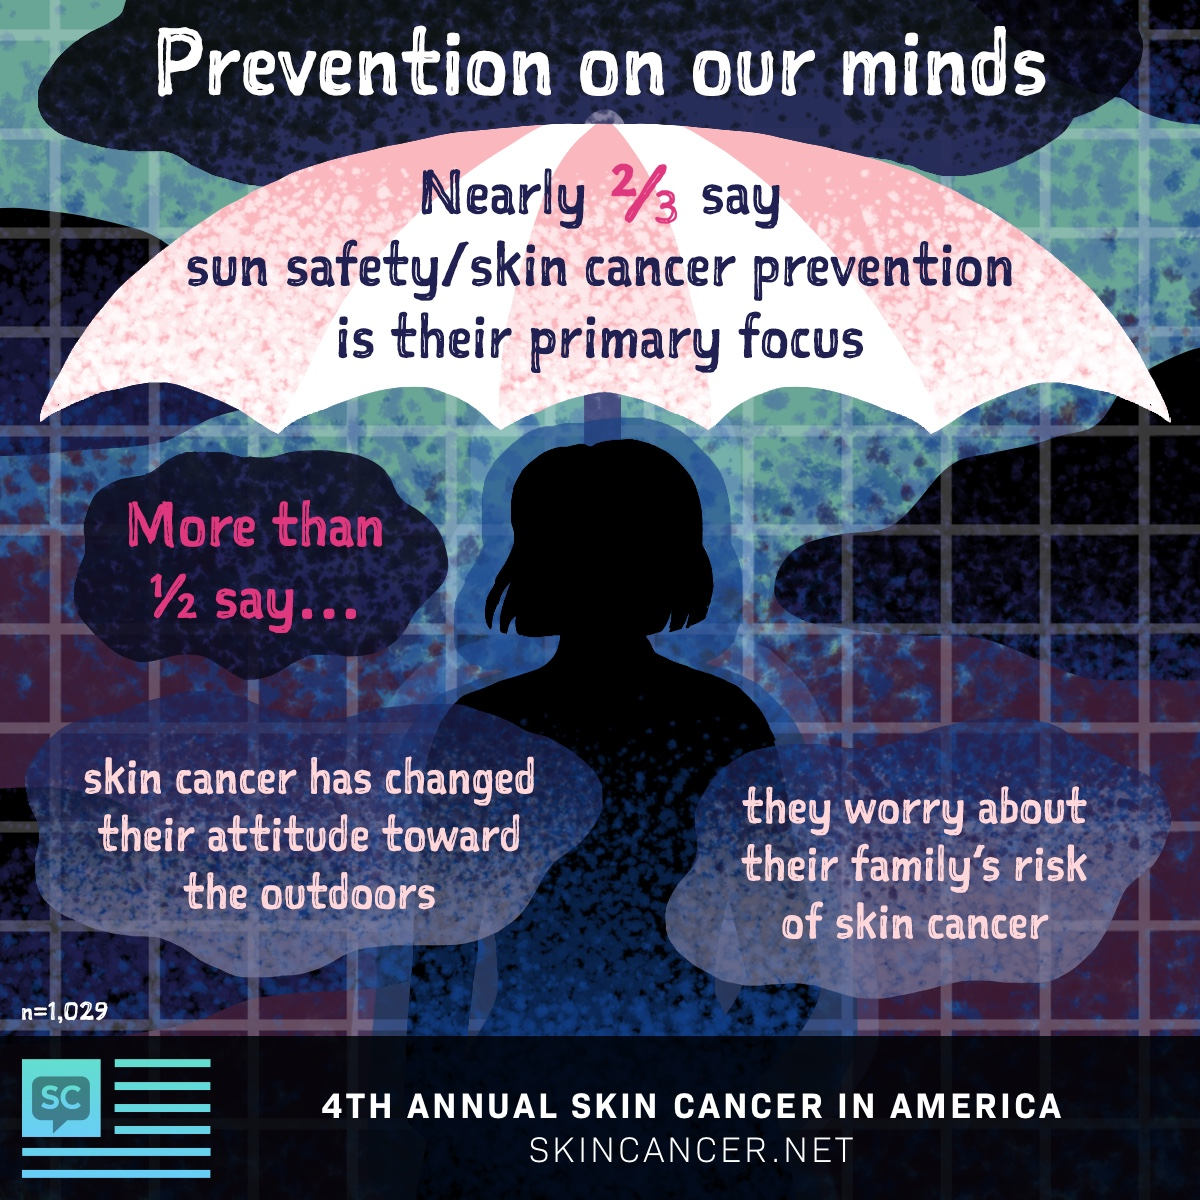 SkinCancer.net 2020 In America survey results, ⅔ respondents said prevention is their main focus.